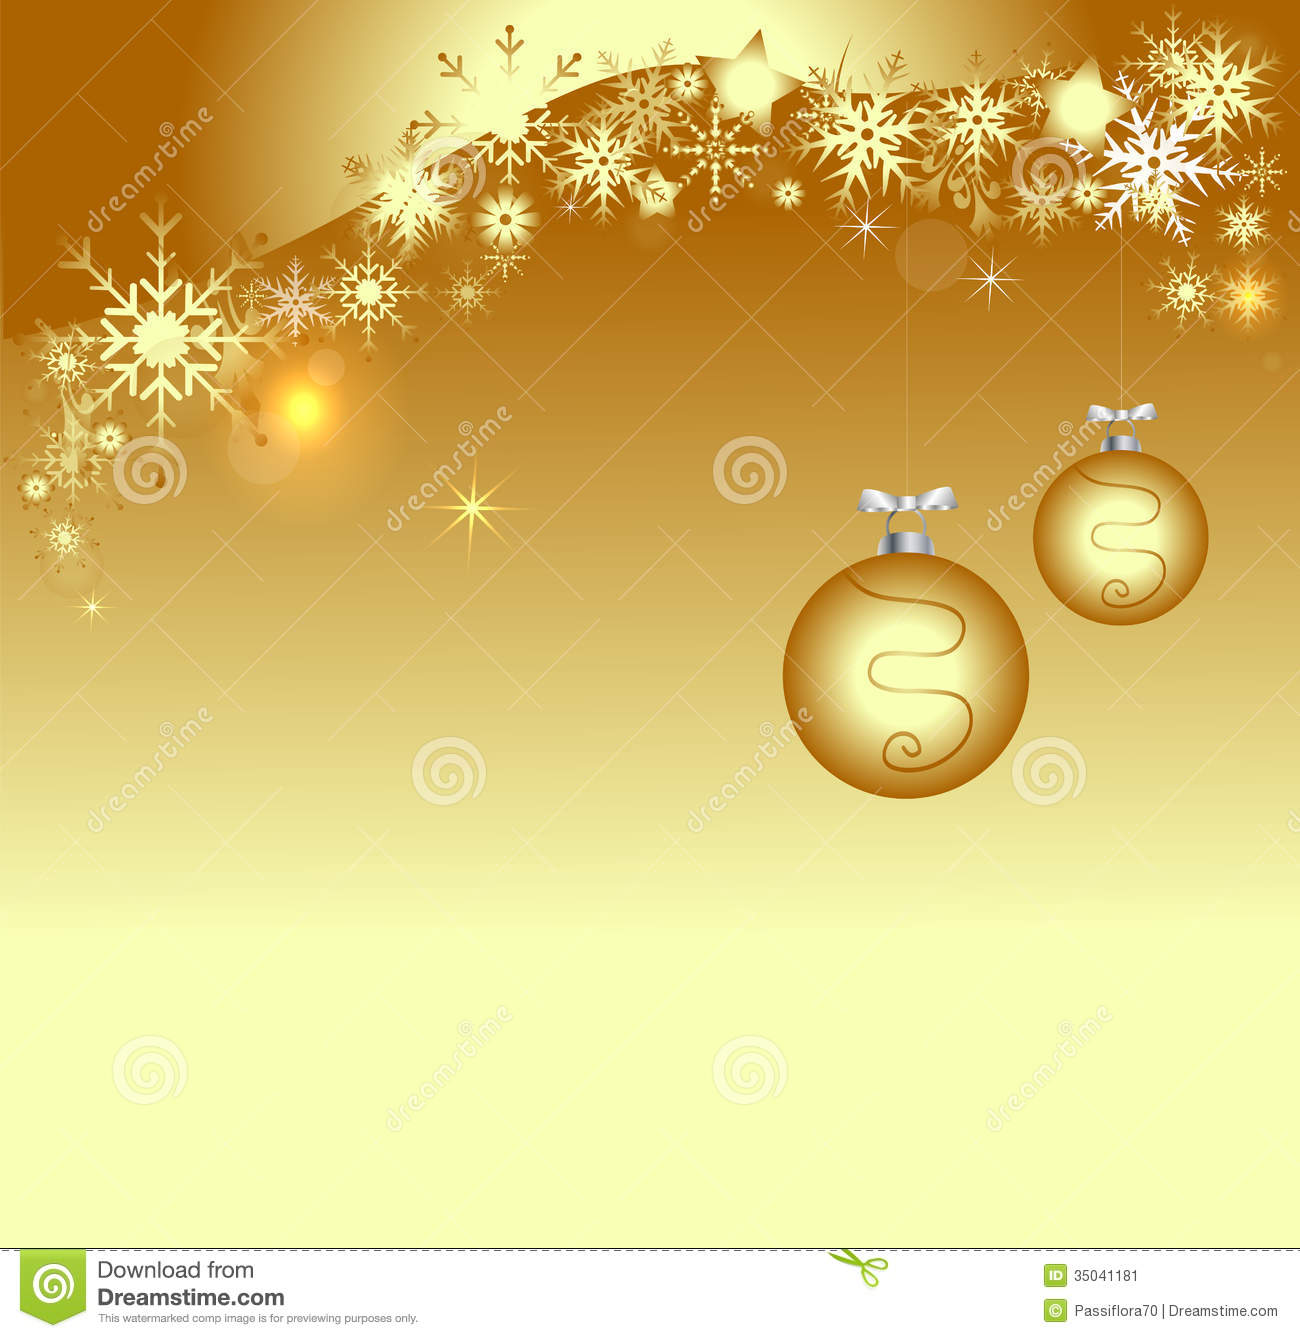 world religion map with Stock Image Merry Christmas Golden Background Balls Image35041181 on Mali furthermore Photogallery Sundarbans National Park additionally When The World Stopped Making Sense in addition Pristina likewise Stock Image Merry Christmas Golden Background Balls Image35041181.